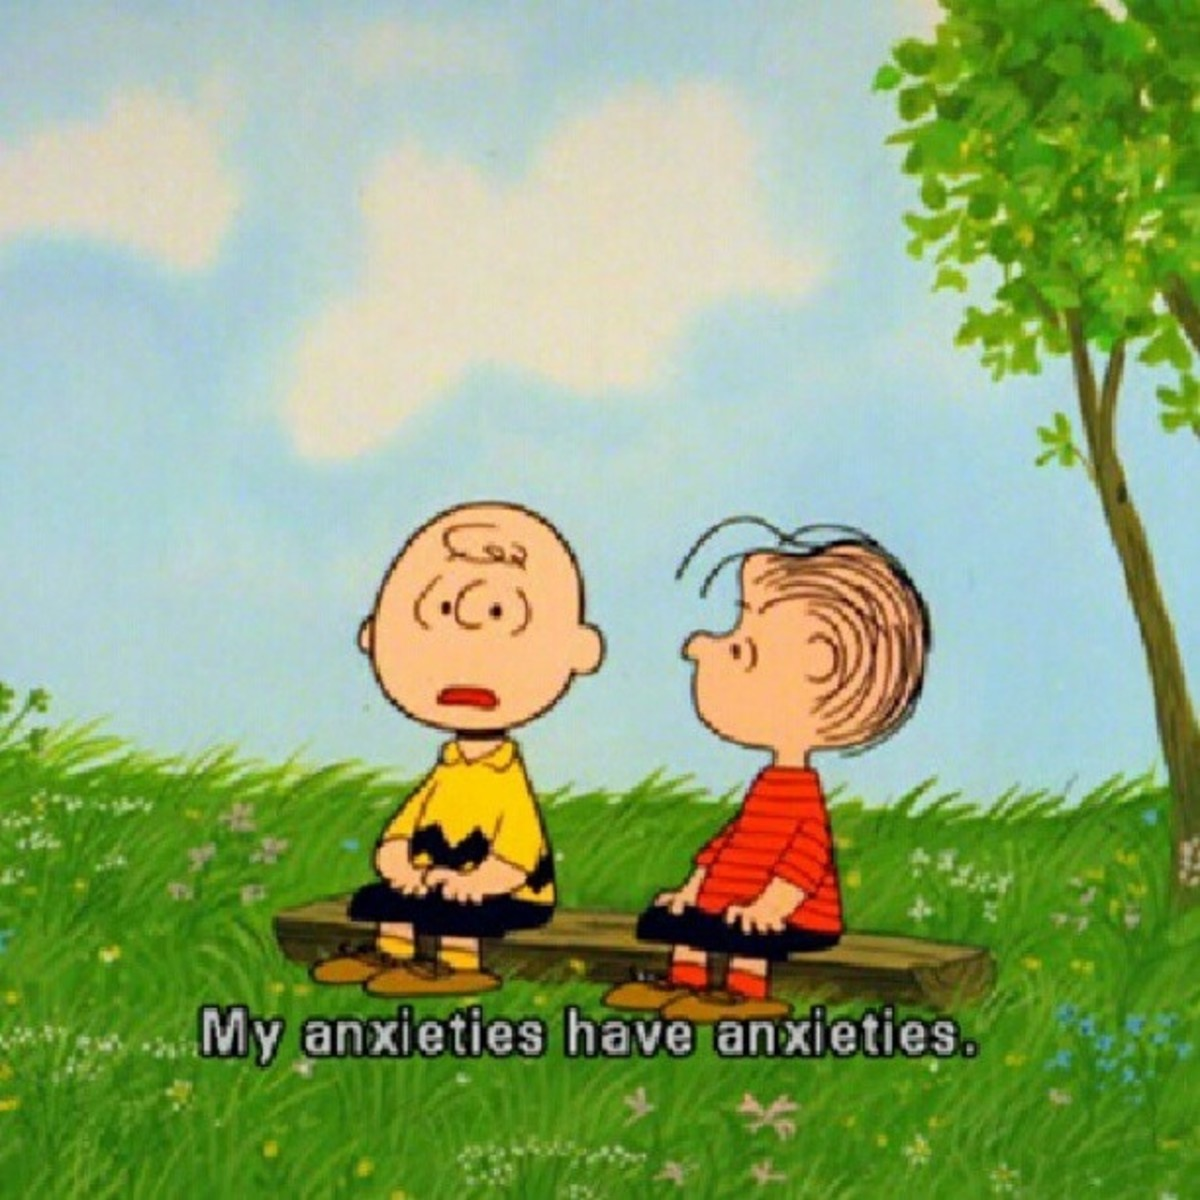 Charlie Brown and anxiety is (sometimes) such a mood